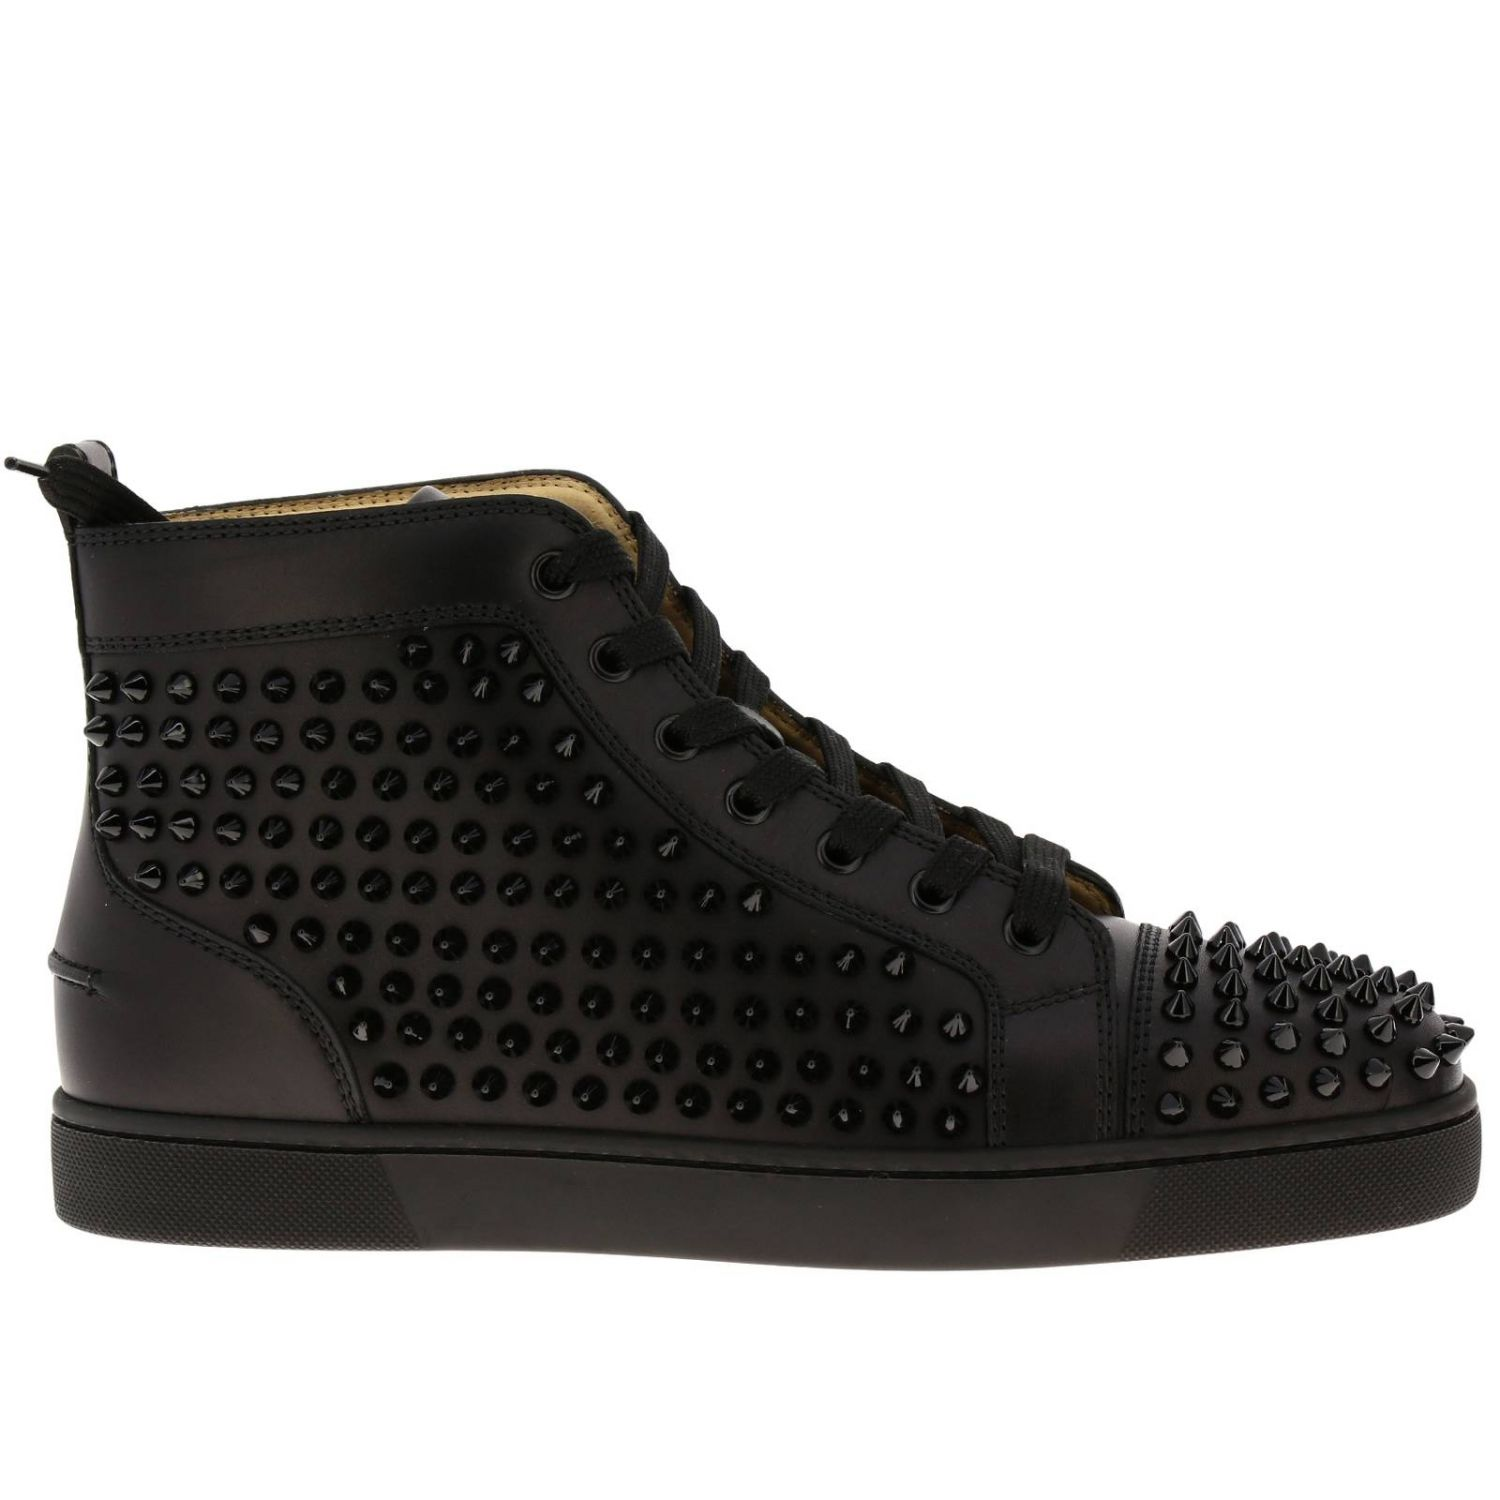 chaussure a clou homme louboutin